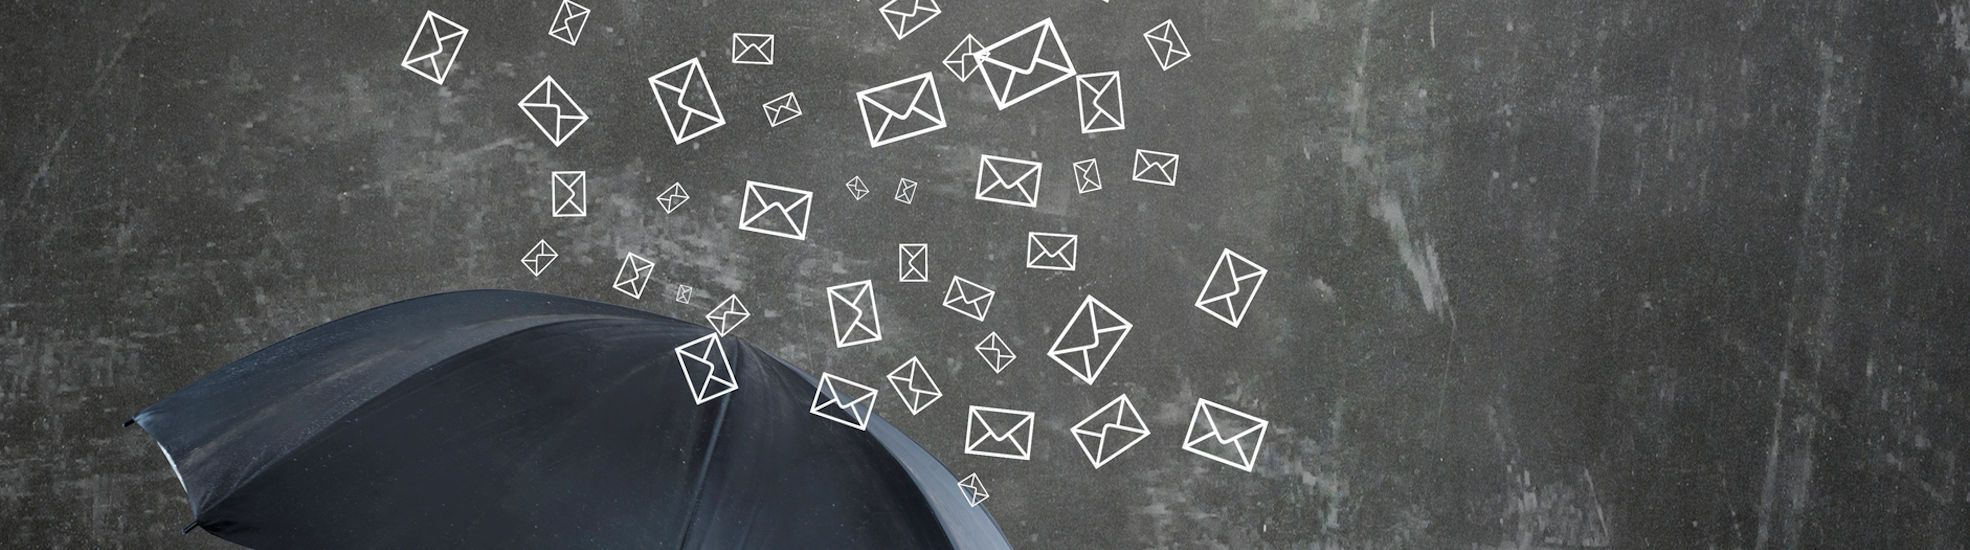 Protect your staff from spam and malware